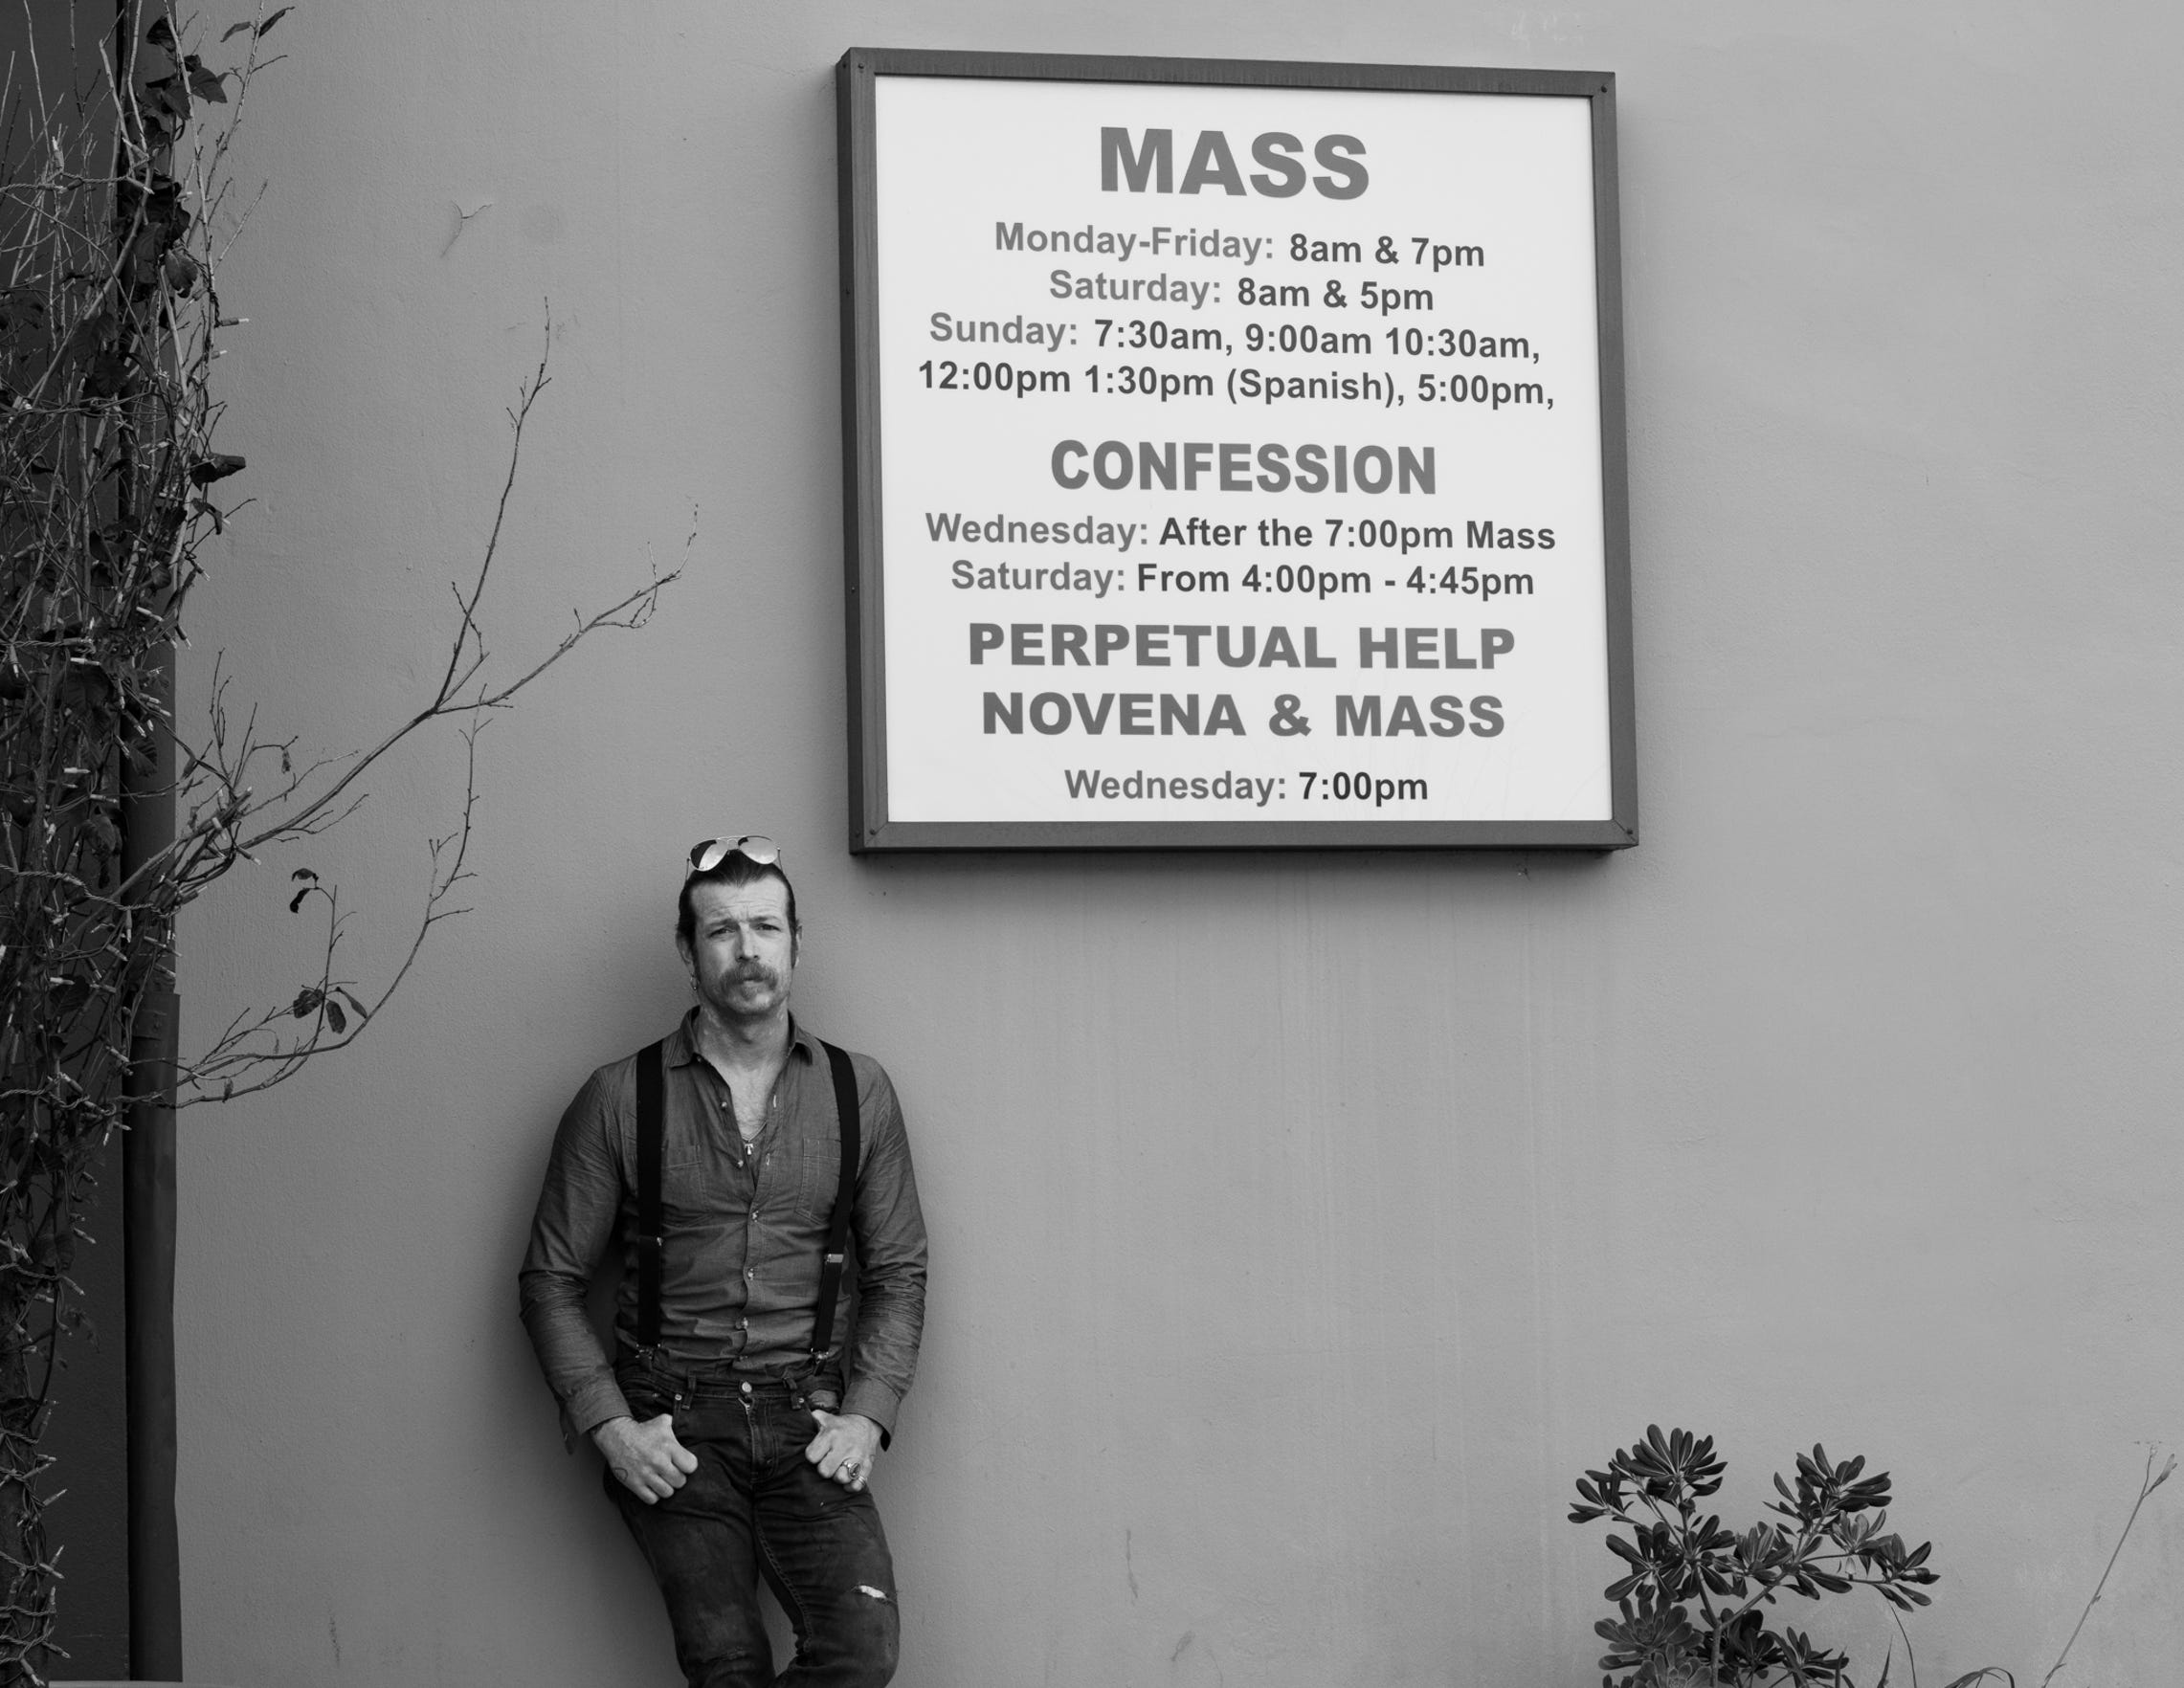 Jesse Hughes poses in front of a sign at the Holy Trinity Catholic Church in Los Angeles, Calif. on Dec. 19, 2019.